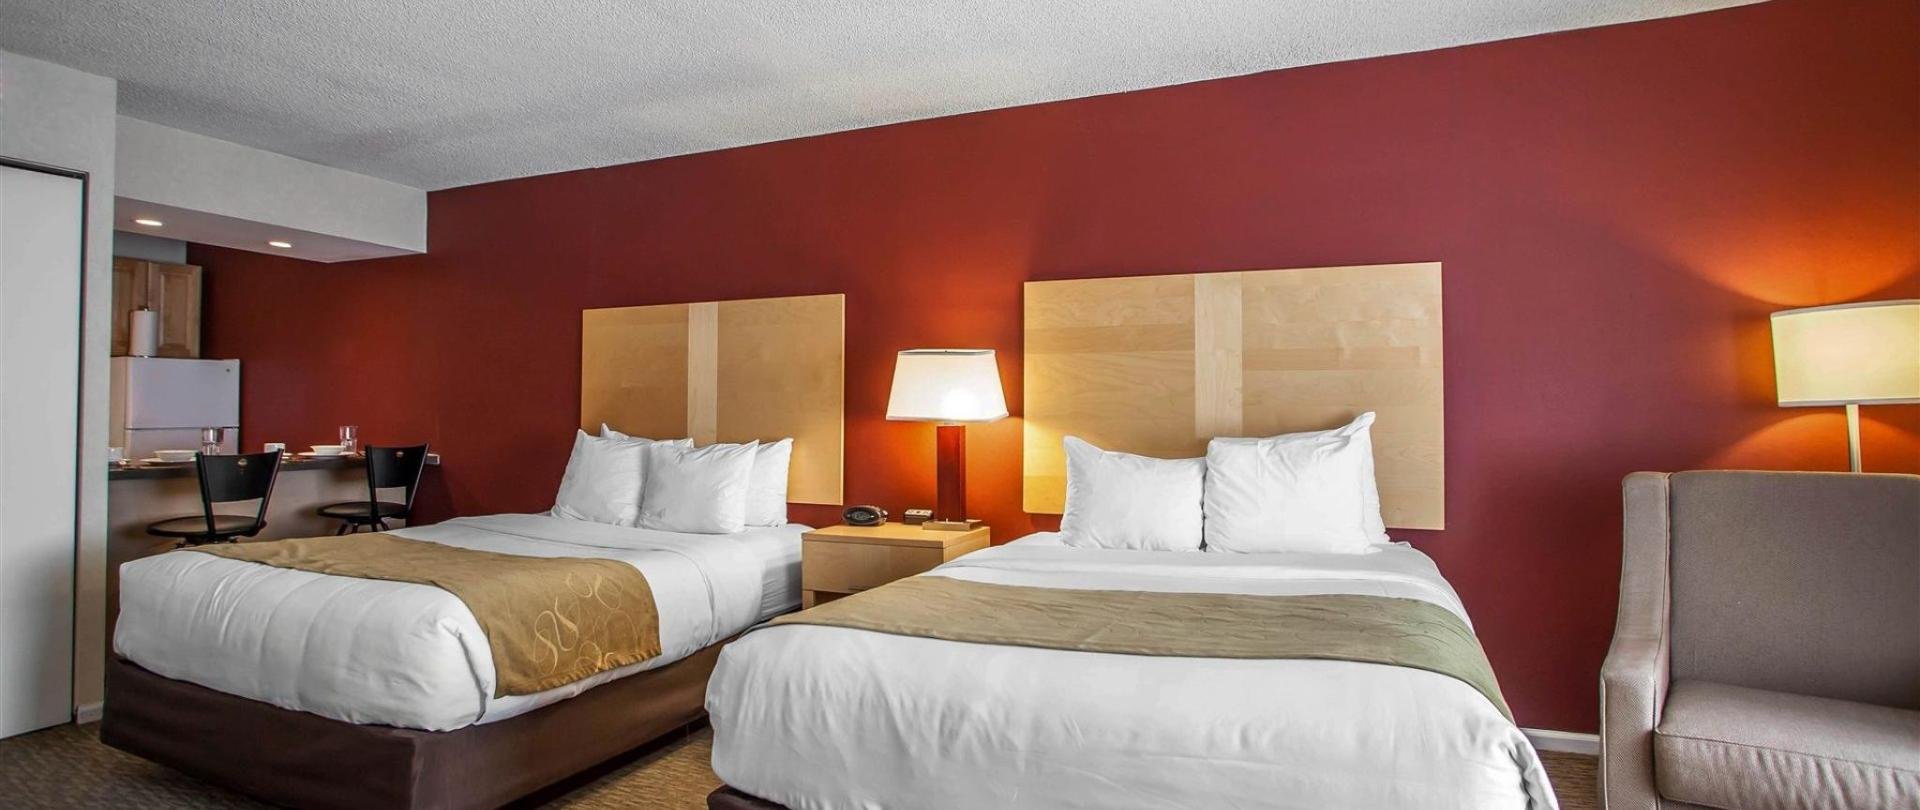 Downtown chicago hotel michigan avenue hotel comfort suites chicago comfort suites michigan for Two bedroom suites in chicago